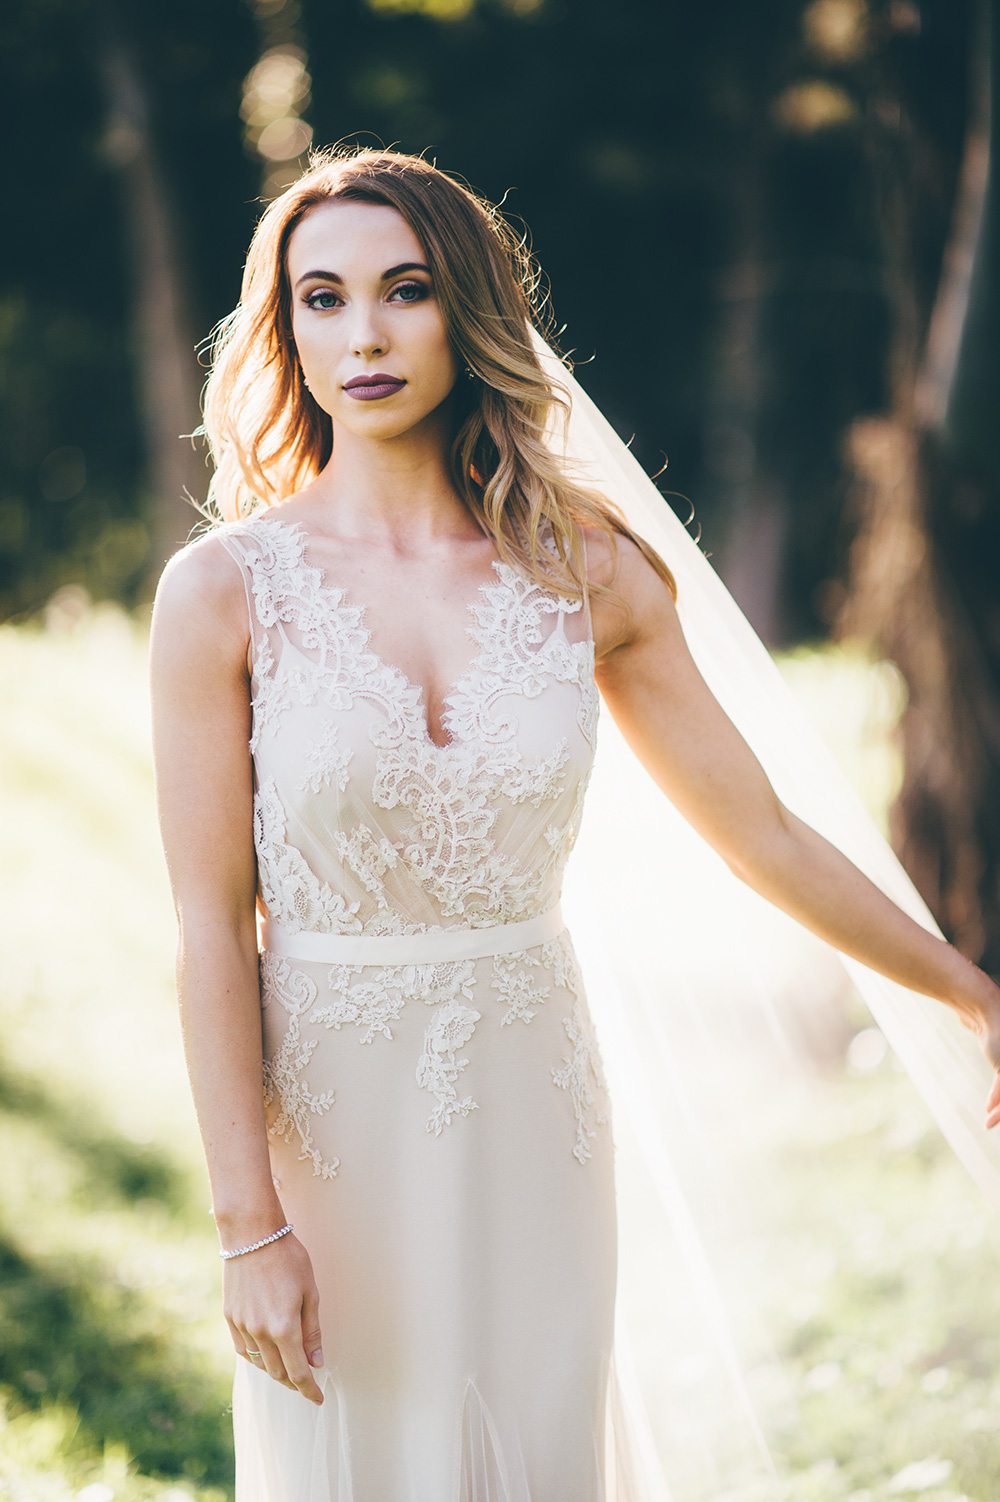 Lace Wedding Dresses Queensland : Edgy and timeless lace dresses queensland brides